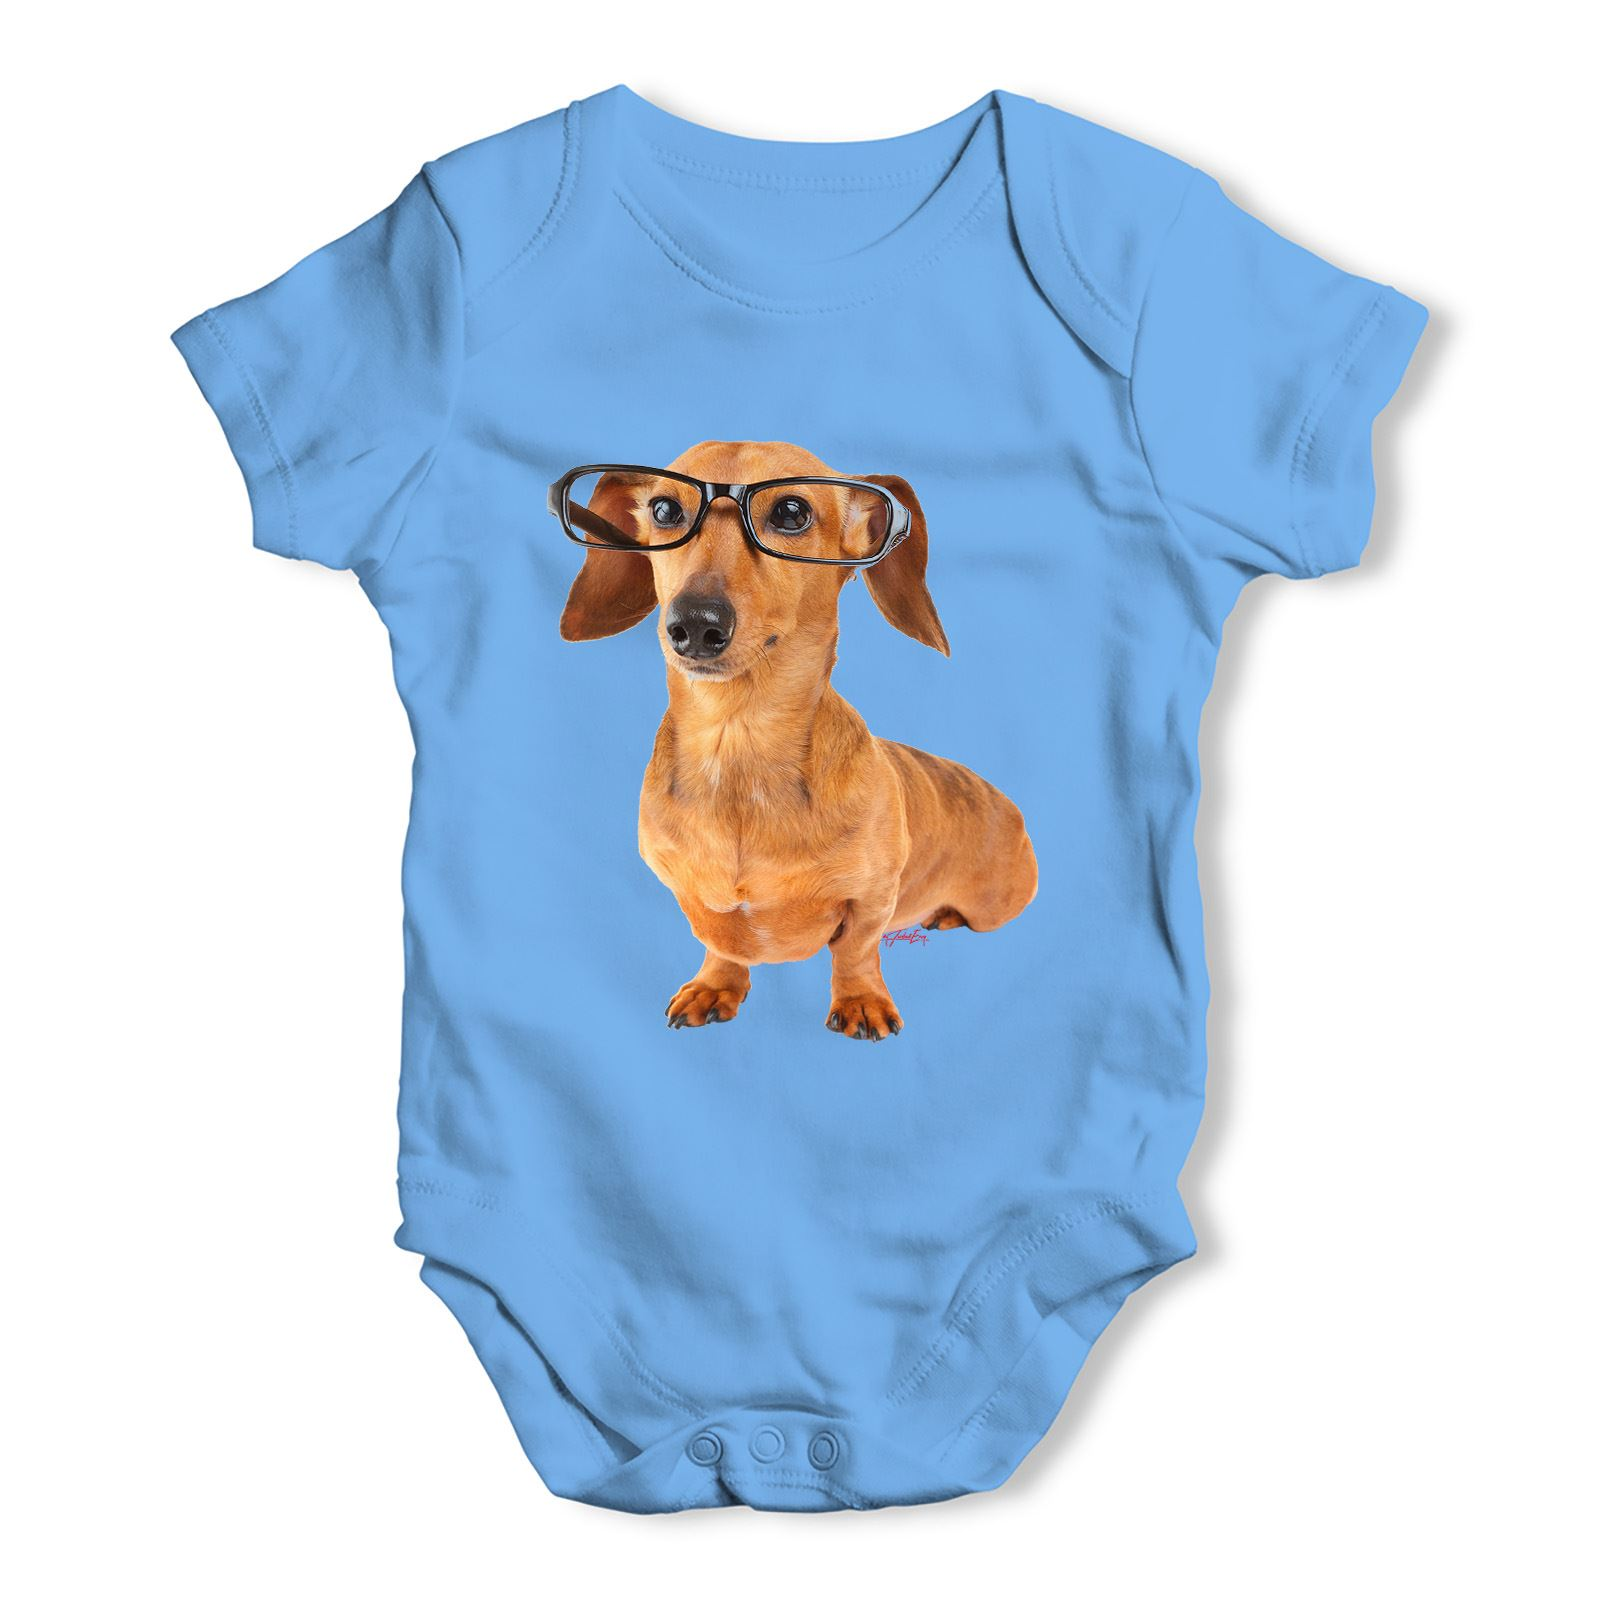 Twisted Envy Doxie Dachshund Hipster Dog Baby Uni Funny Baby Grow